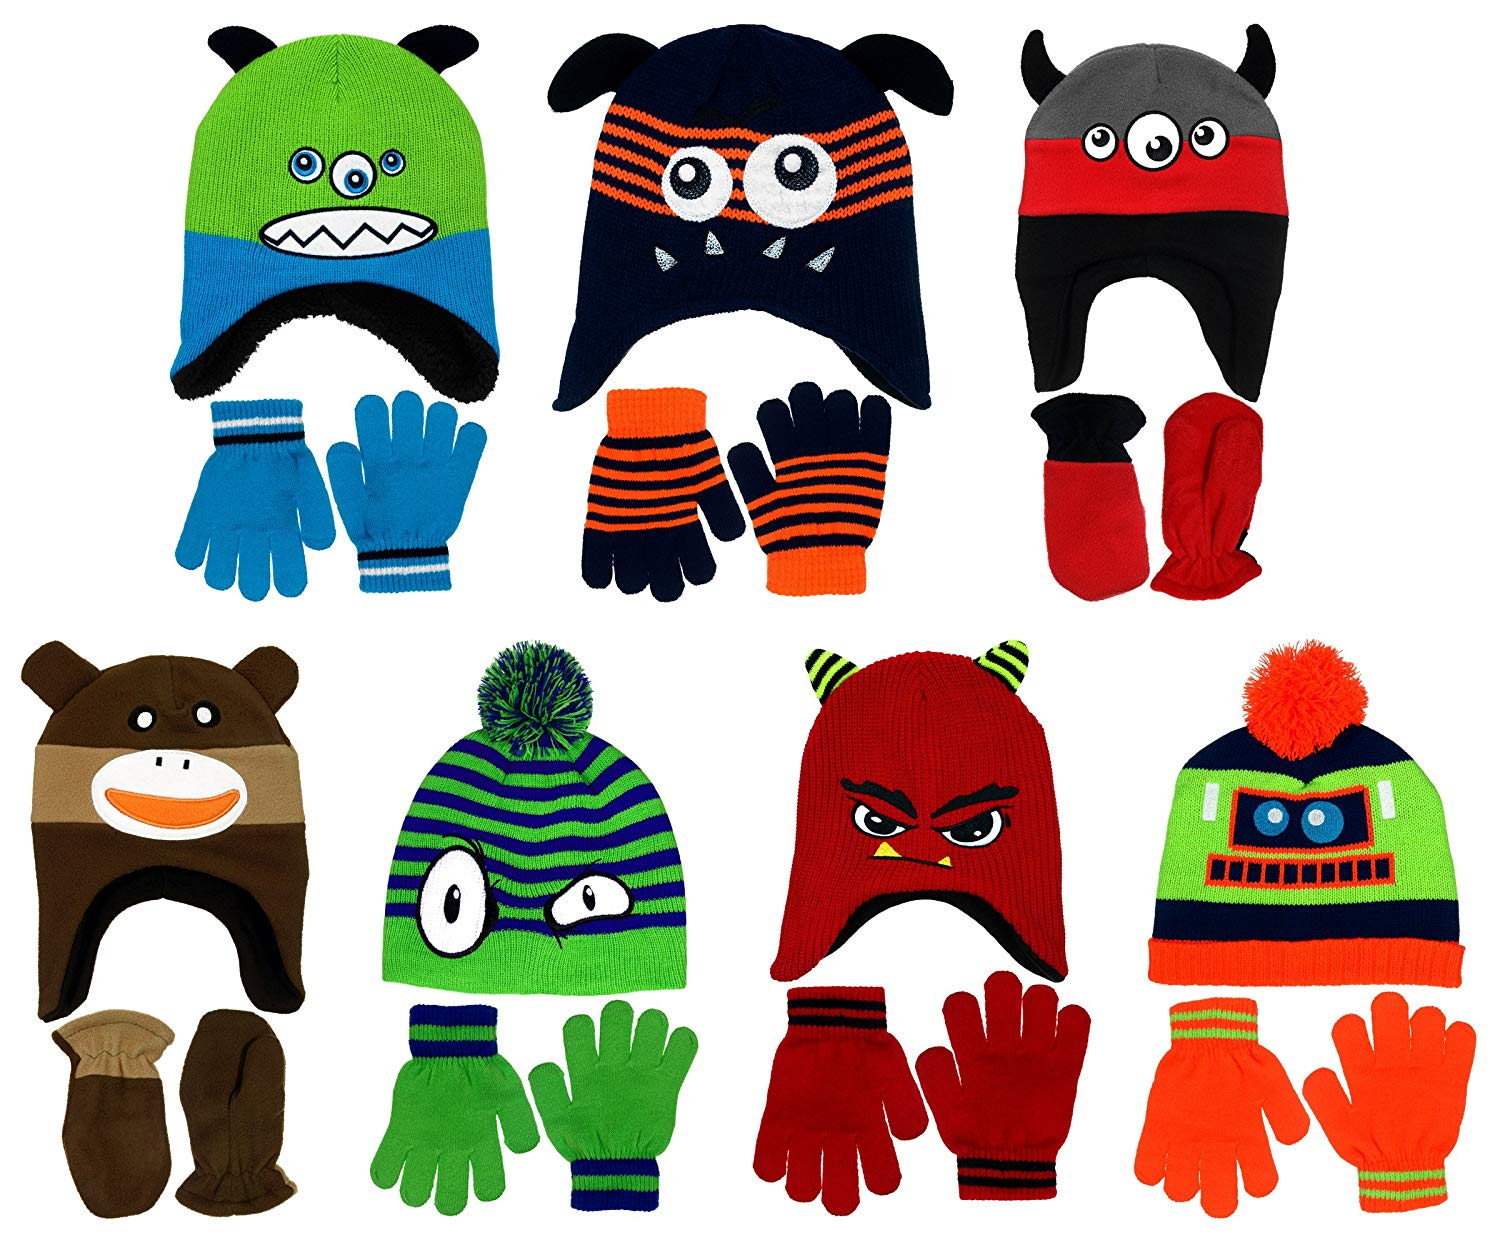 d0f77cdd17187 Get Quotations · Boy s Knit Hat   Gloves or Mittens Sets in Multiple  Designs and Colors Boys Toddlers Infant